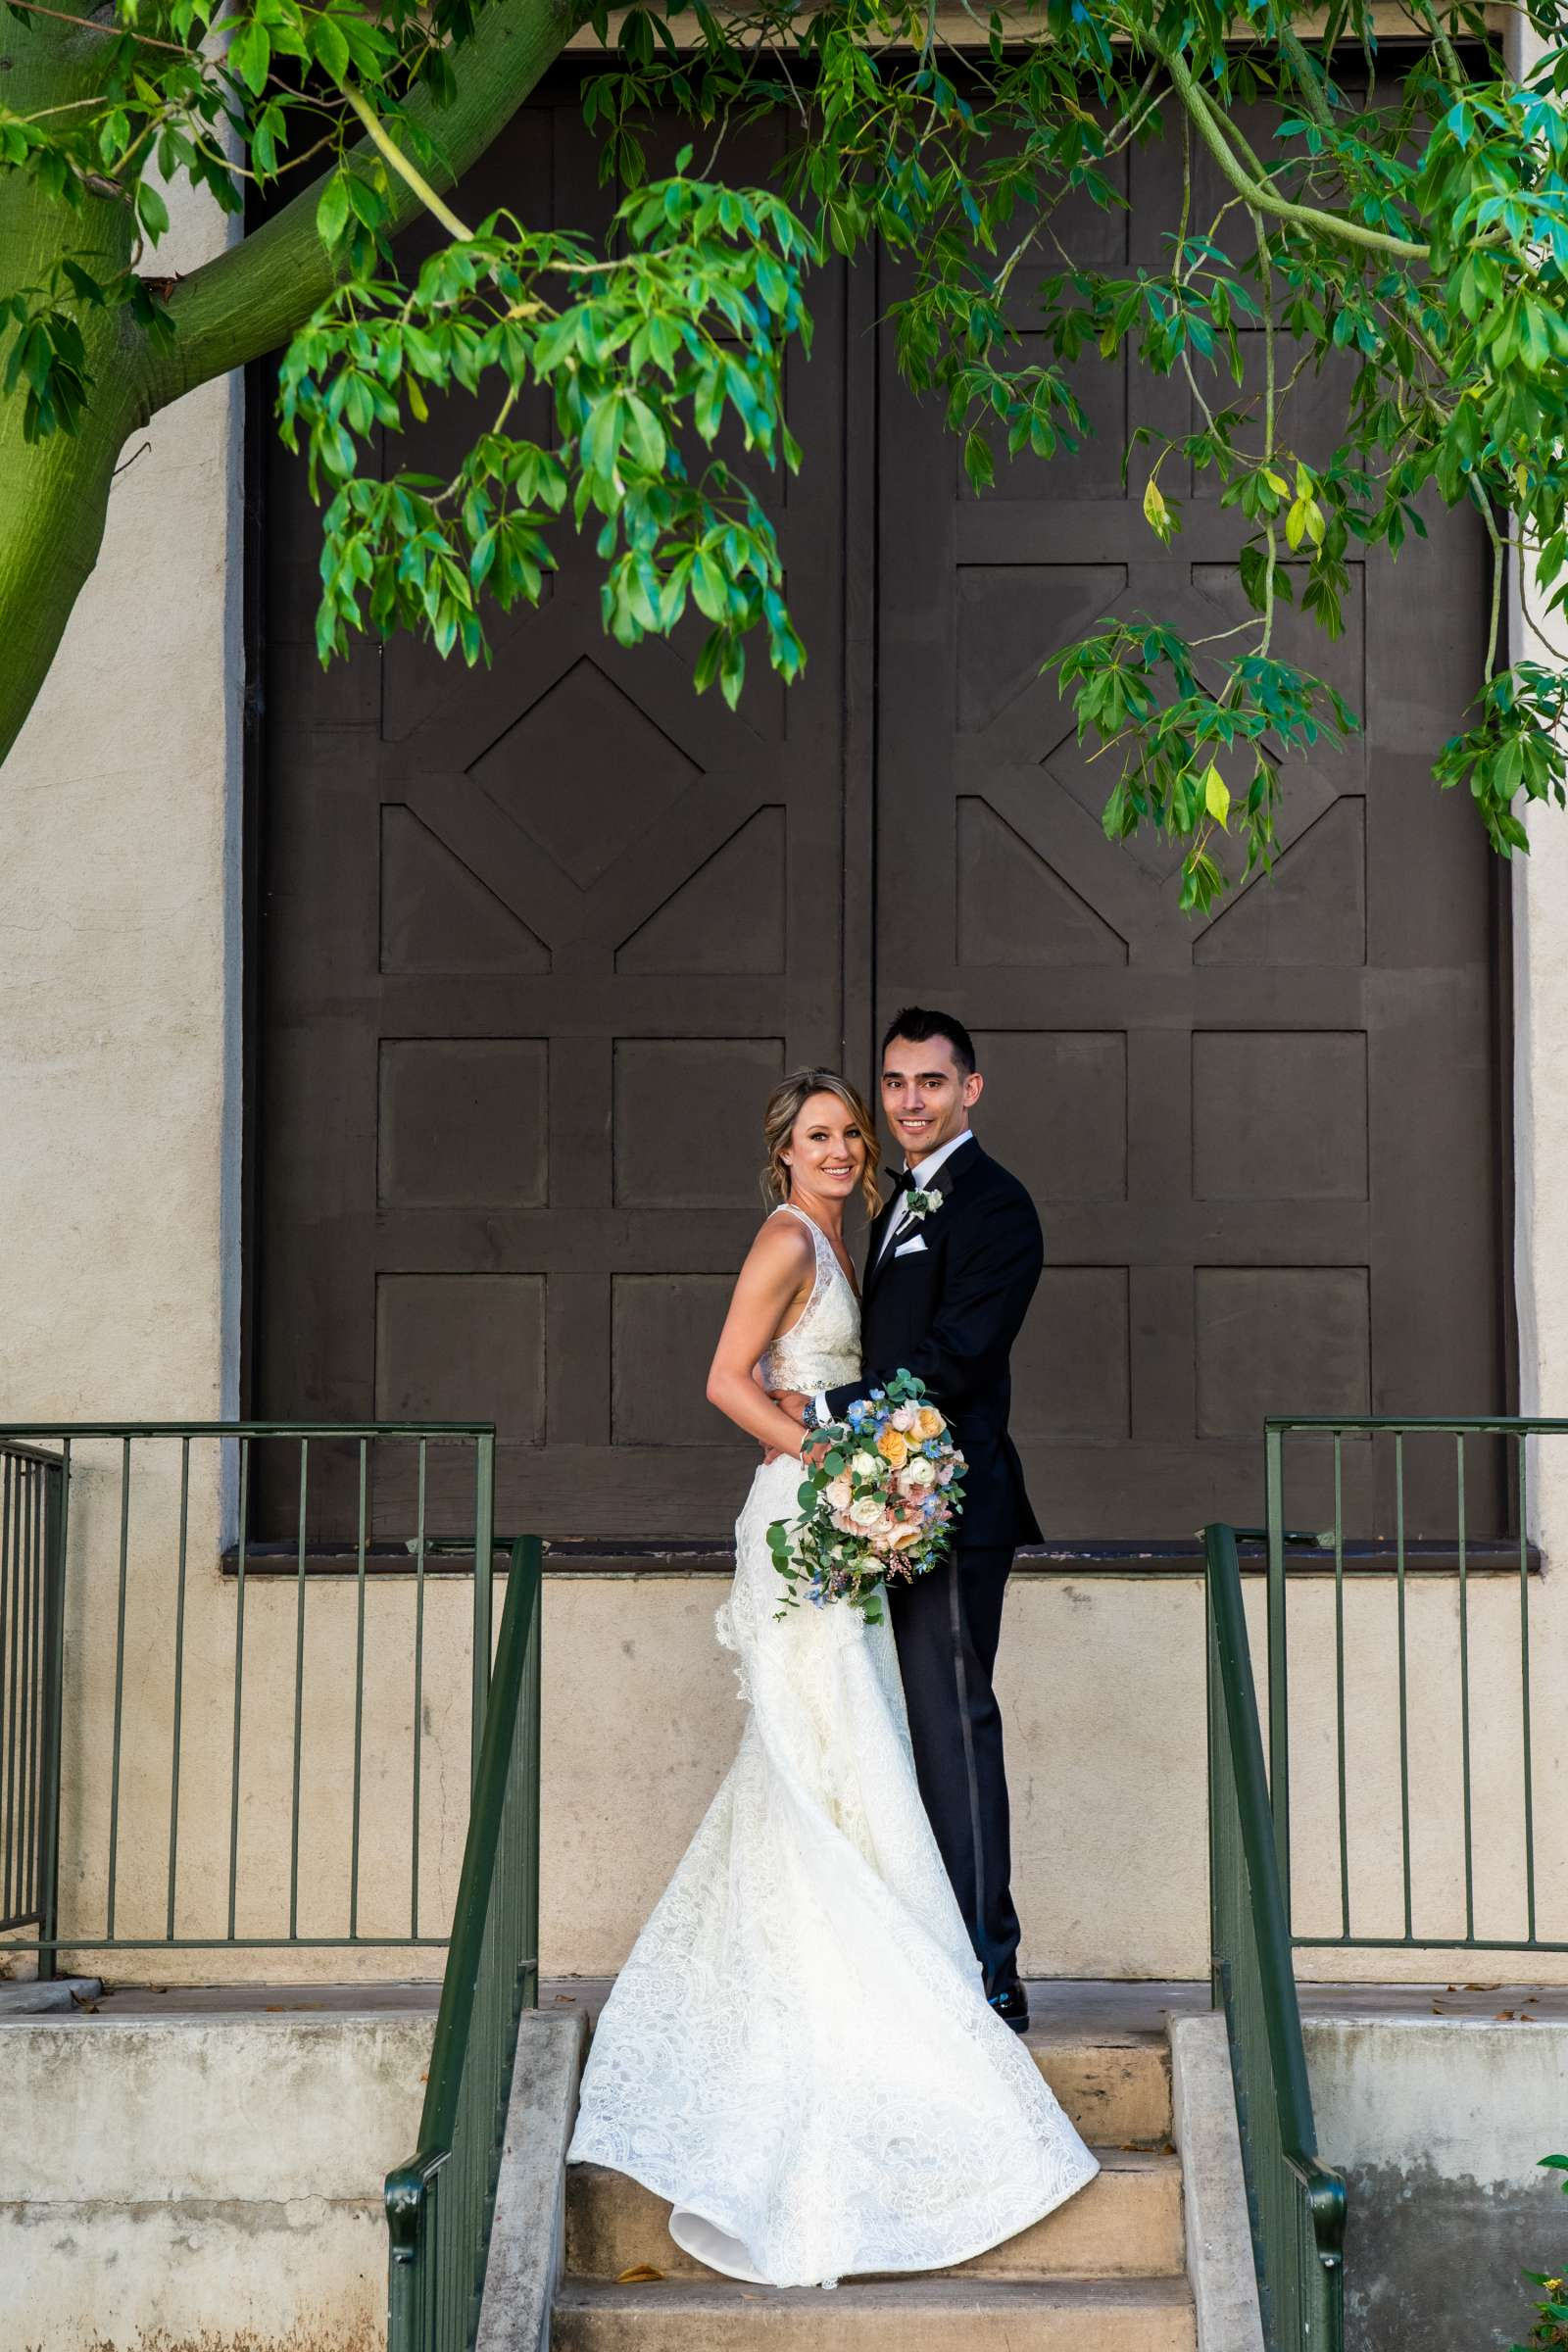 The Prado Wedding coordinated by Bliss Events, Sara and Marvin Wedding Photo #559581 by True Photography